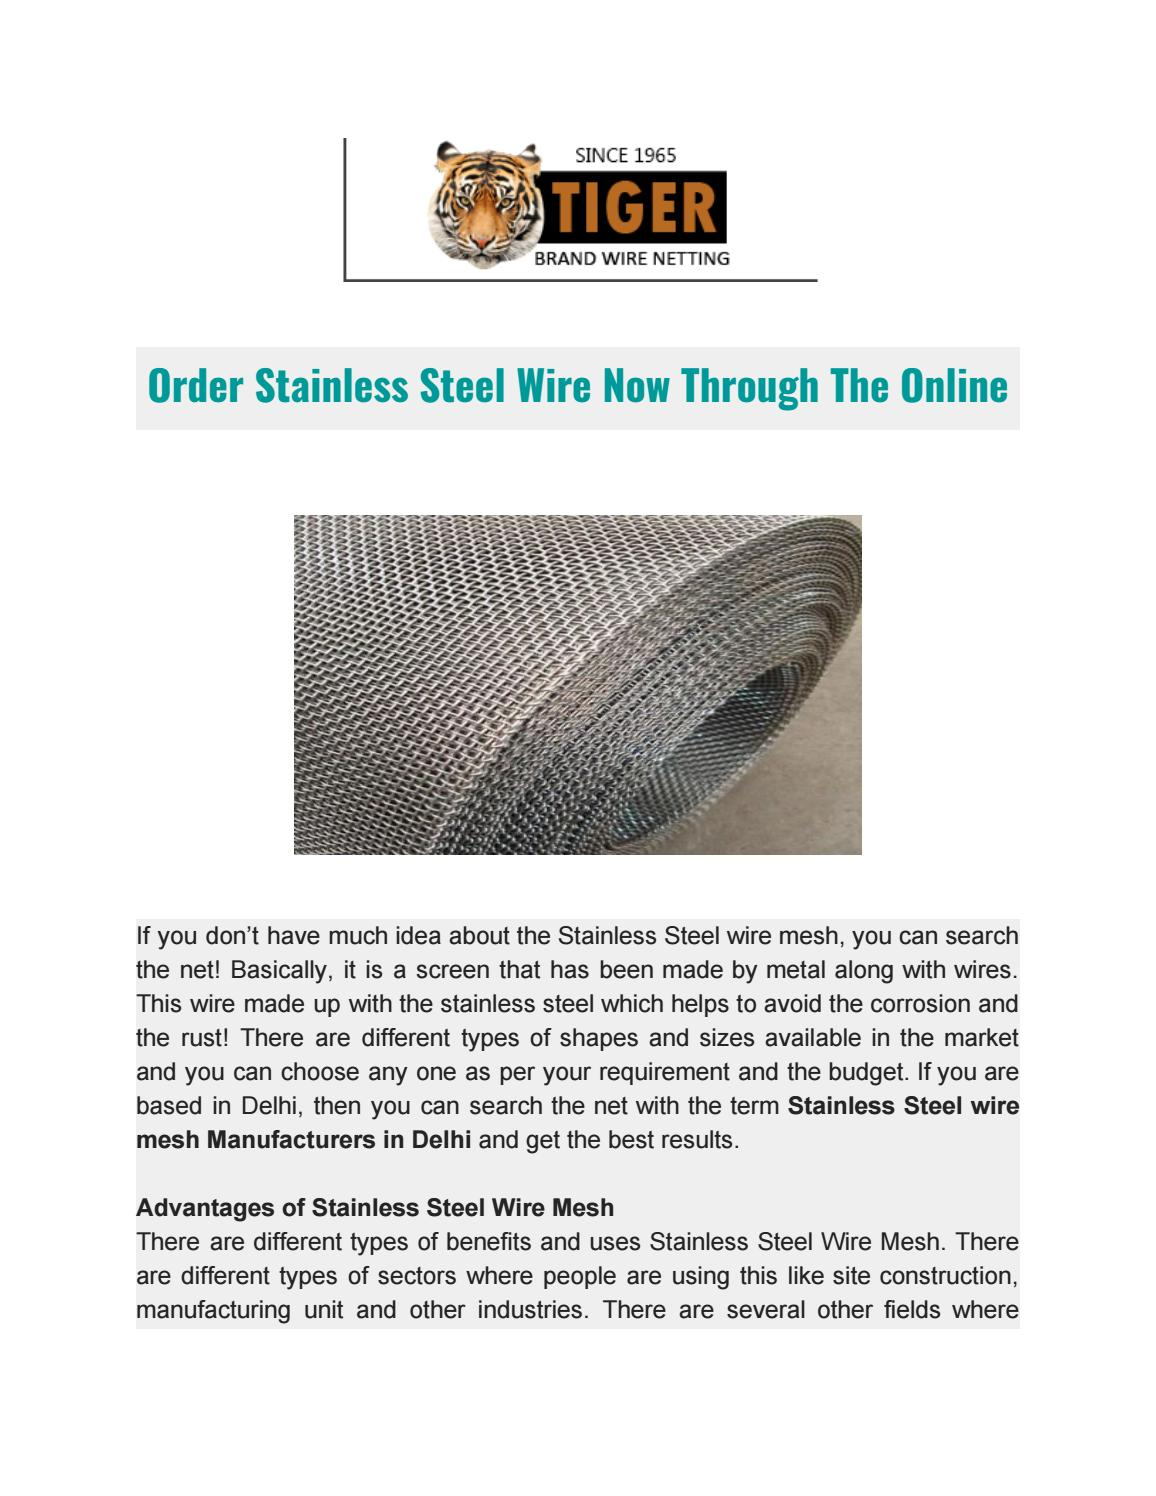 Order Stainless Steel Wire Now Through The Online by